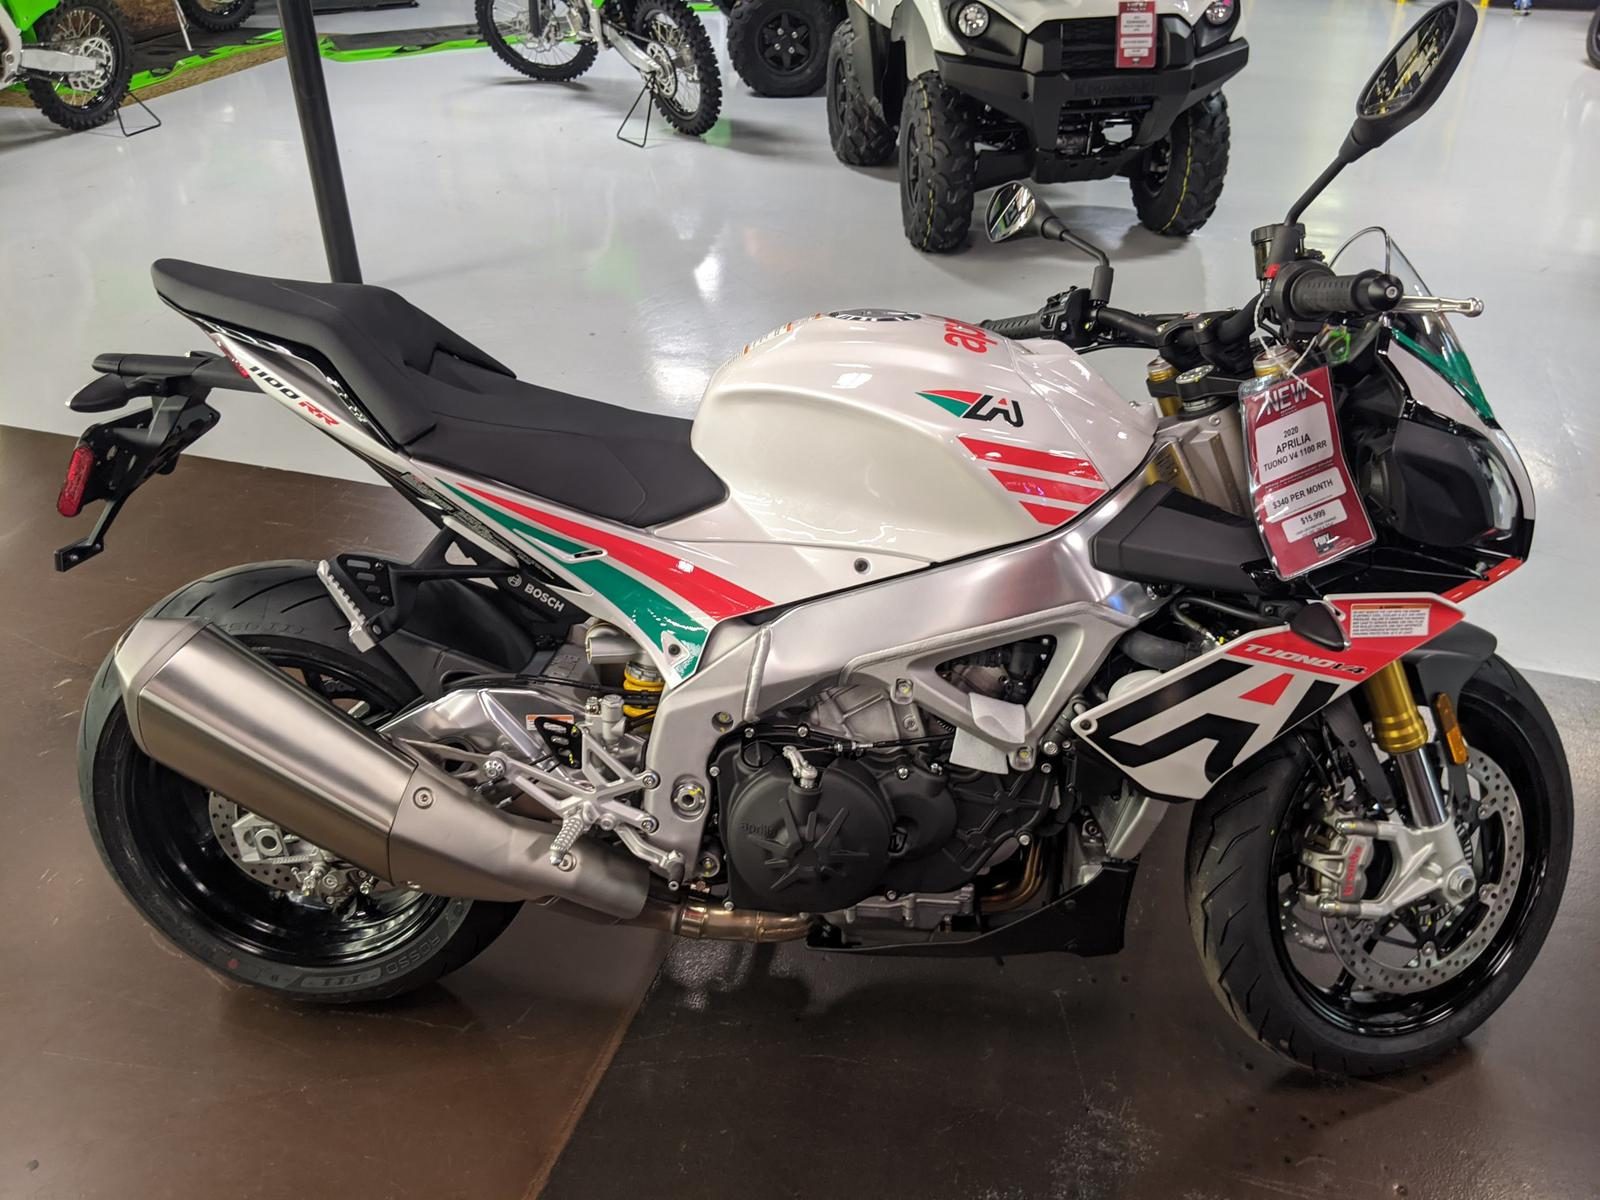 2020 Aprilia Tuono V4 1100 Rr Misano Limited Edition For Sale In Westerville Oh Pony Powersports Columbus Westerville Oh 614 212 7888